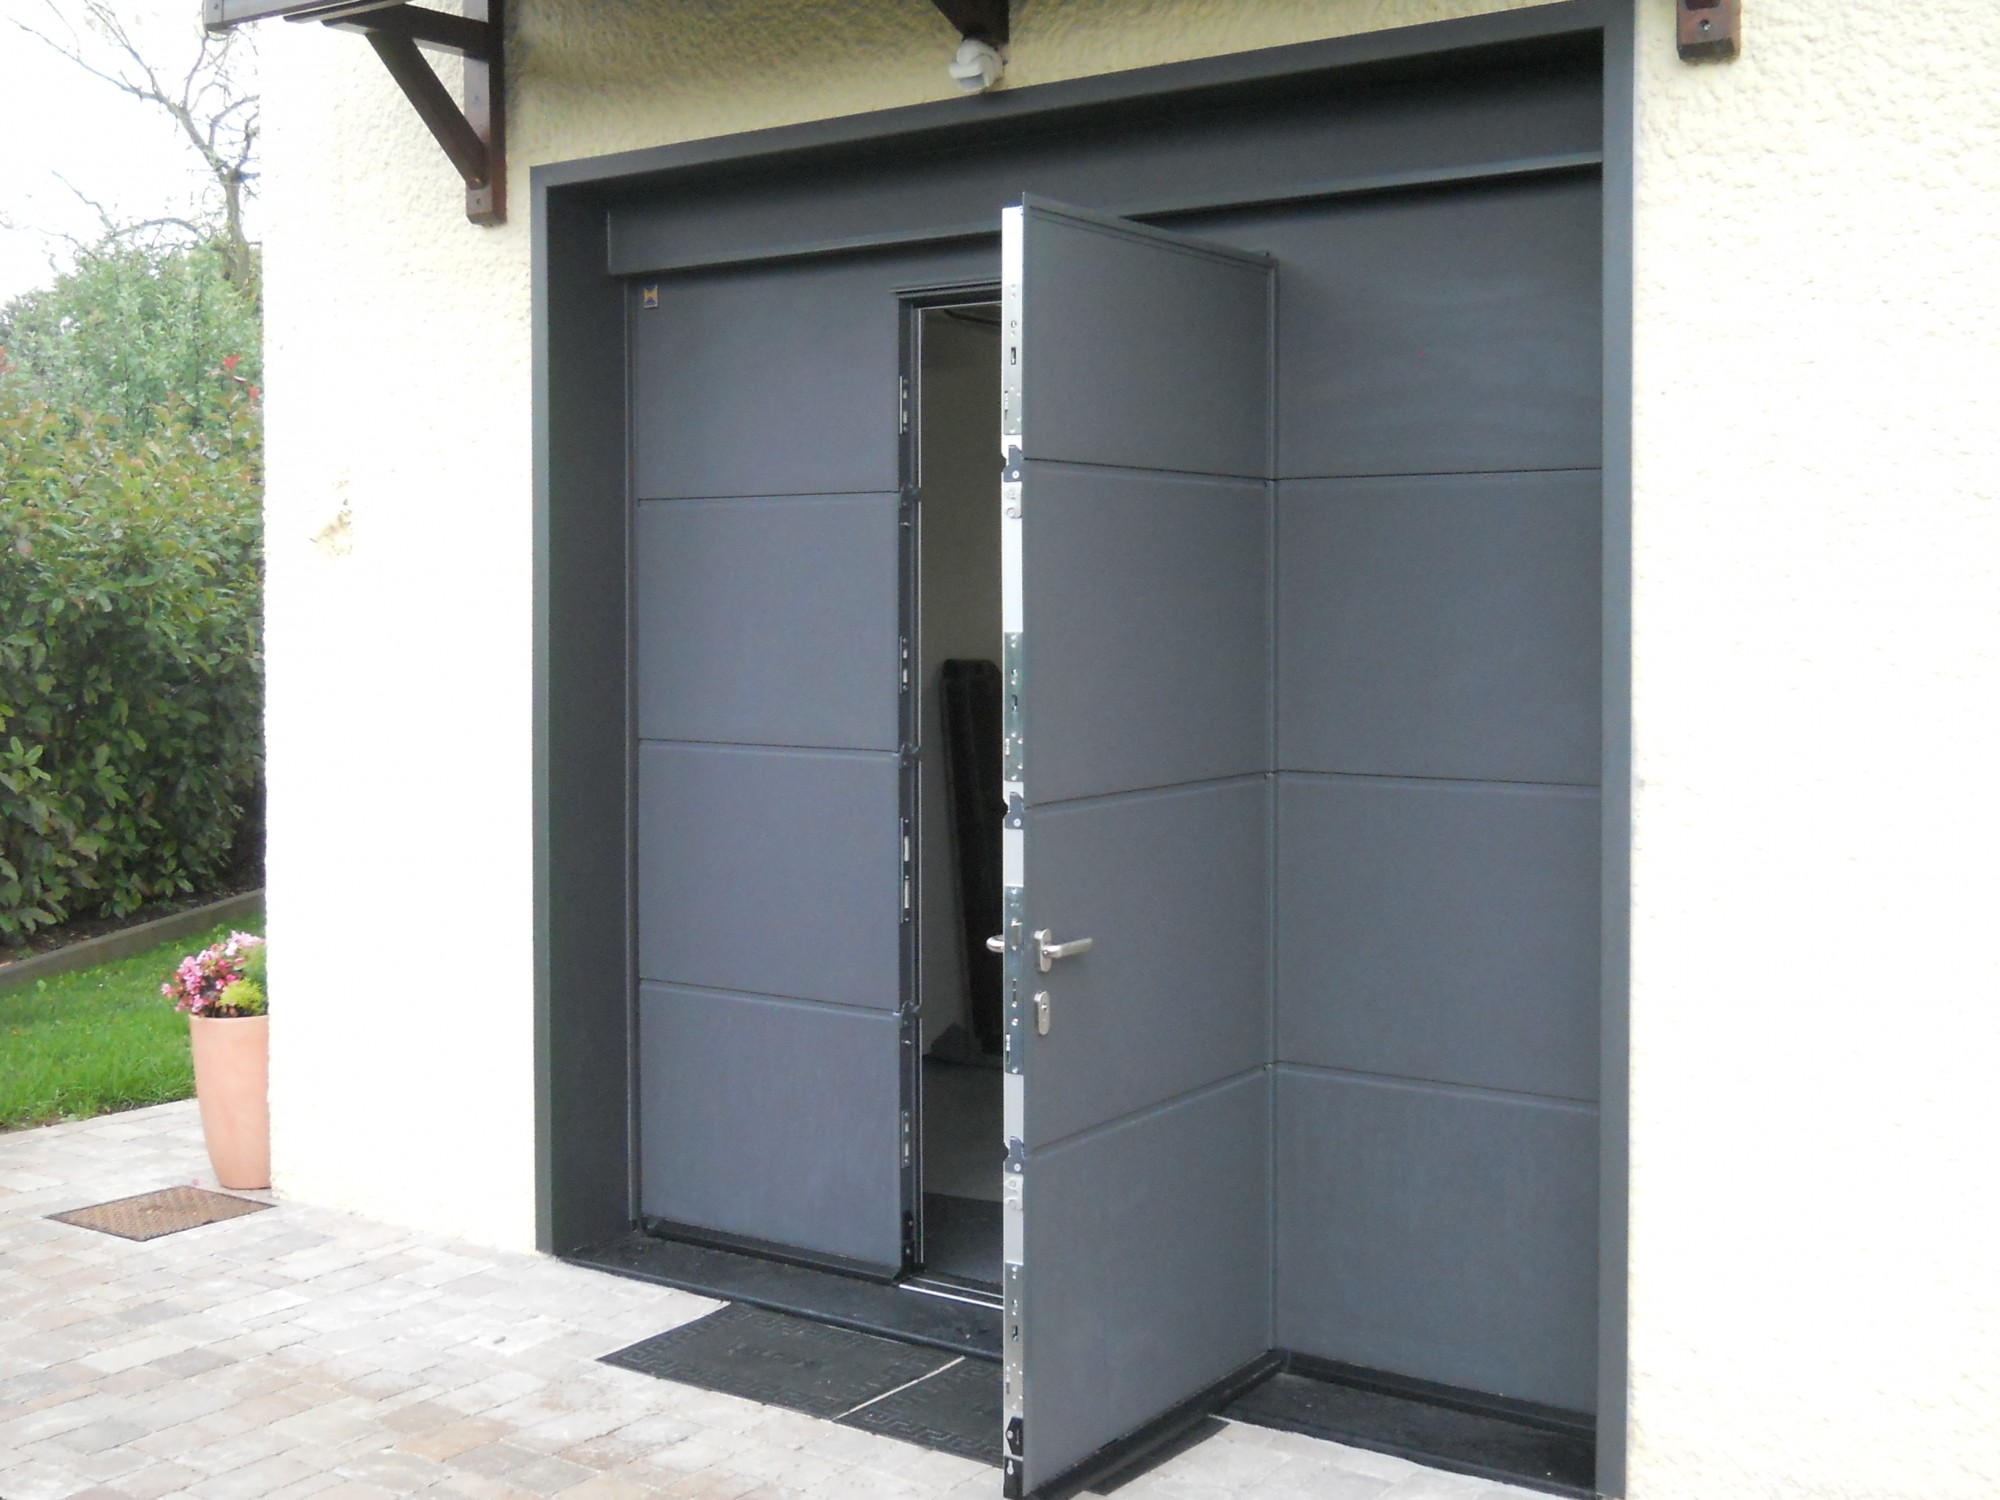 Porte de garage sectionnelle sur mesure hormann for Galet porte de garage basculante hormann